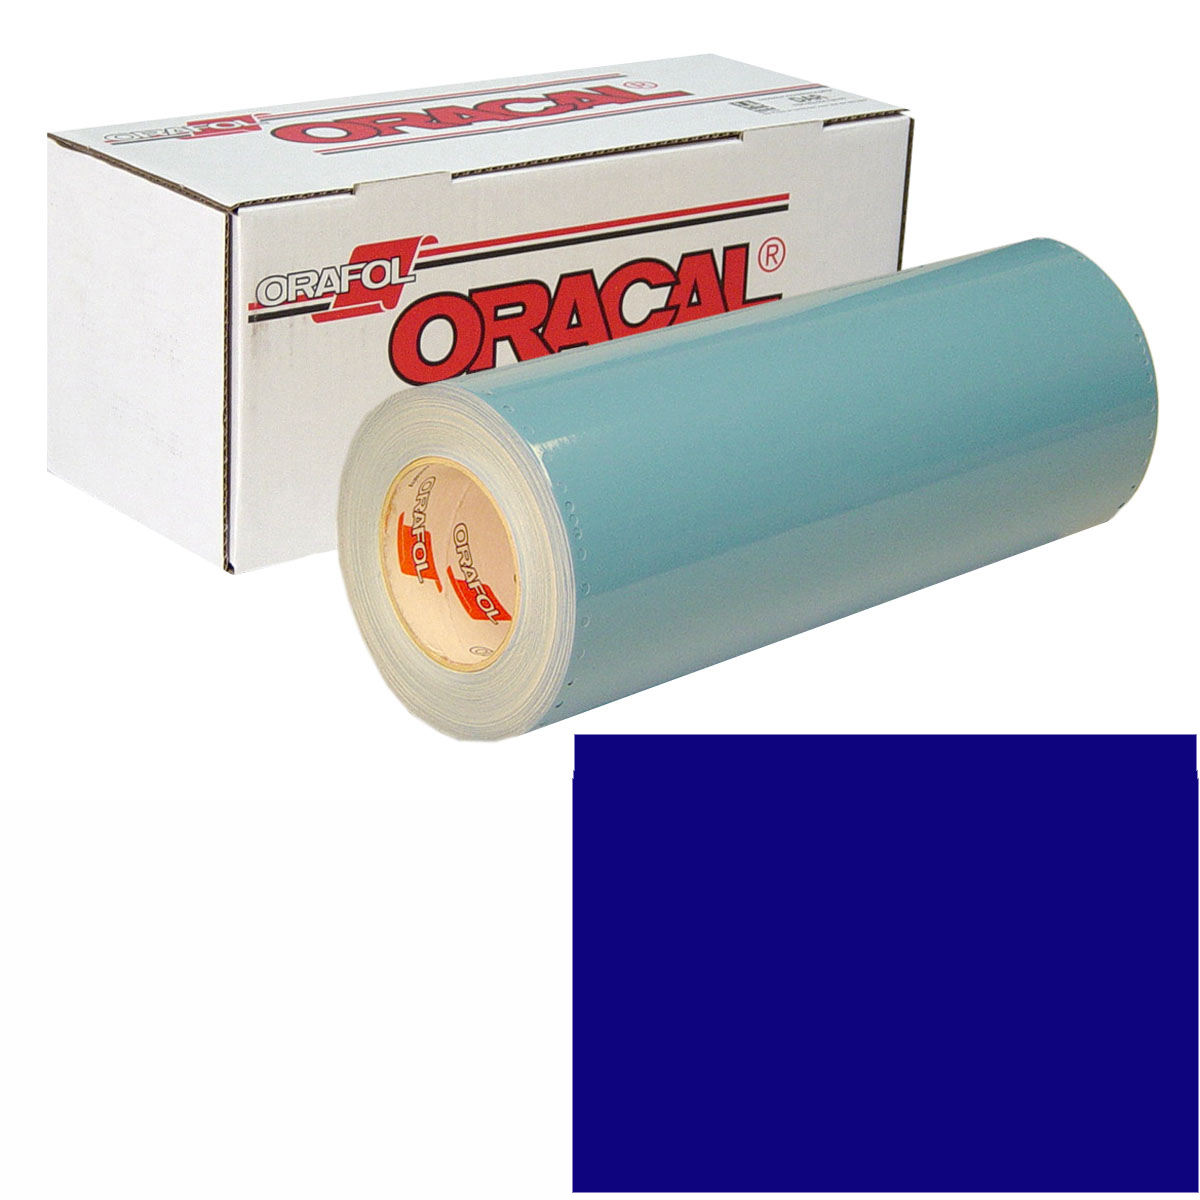 ORACAL 751 15in X 50yd 049 King Blue